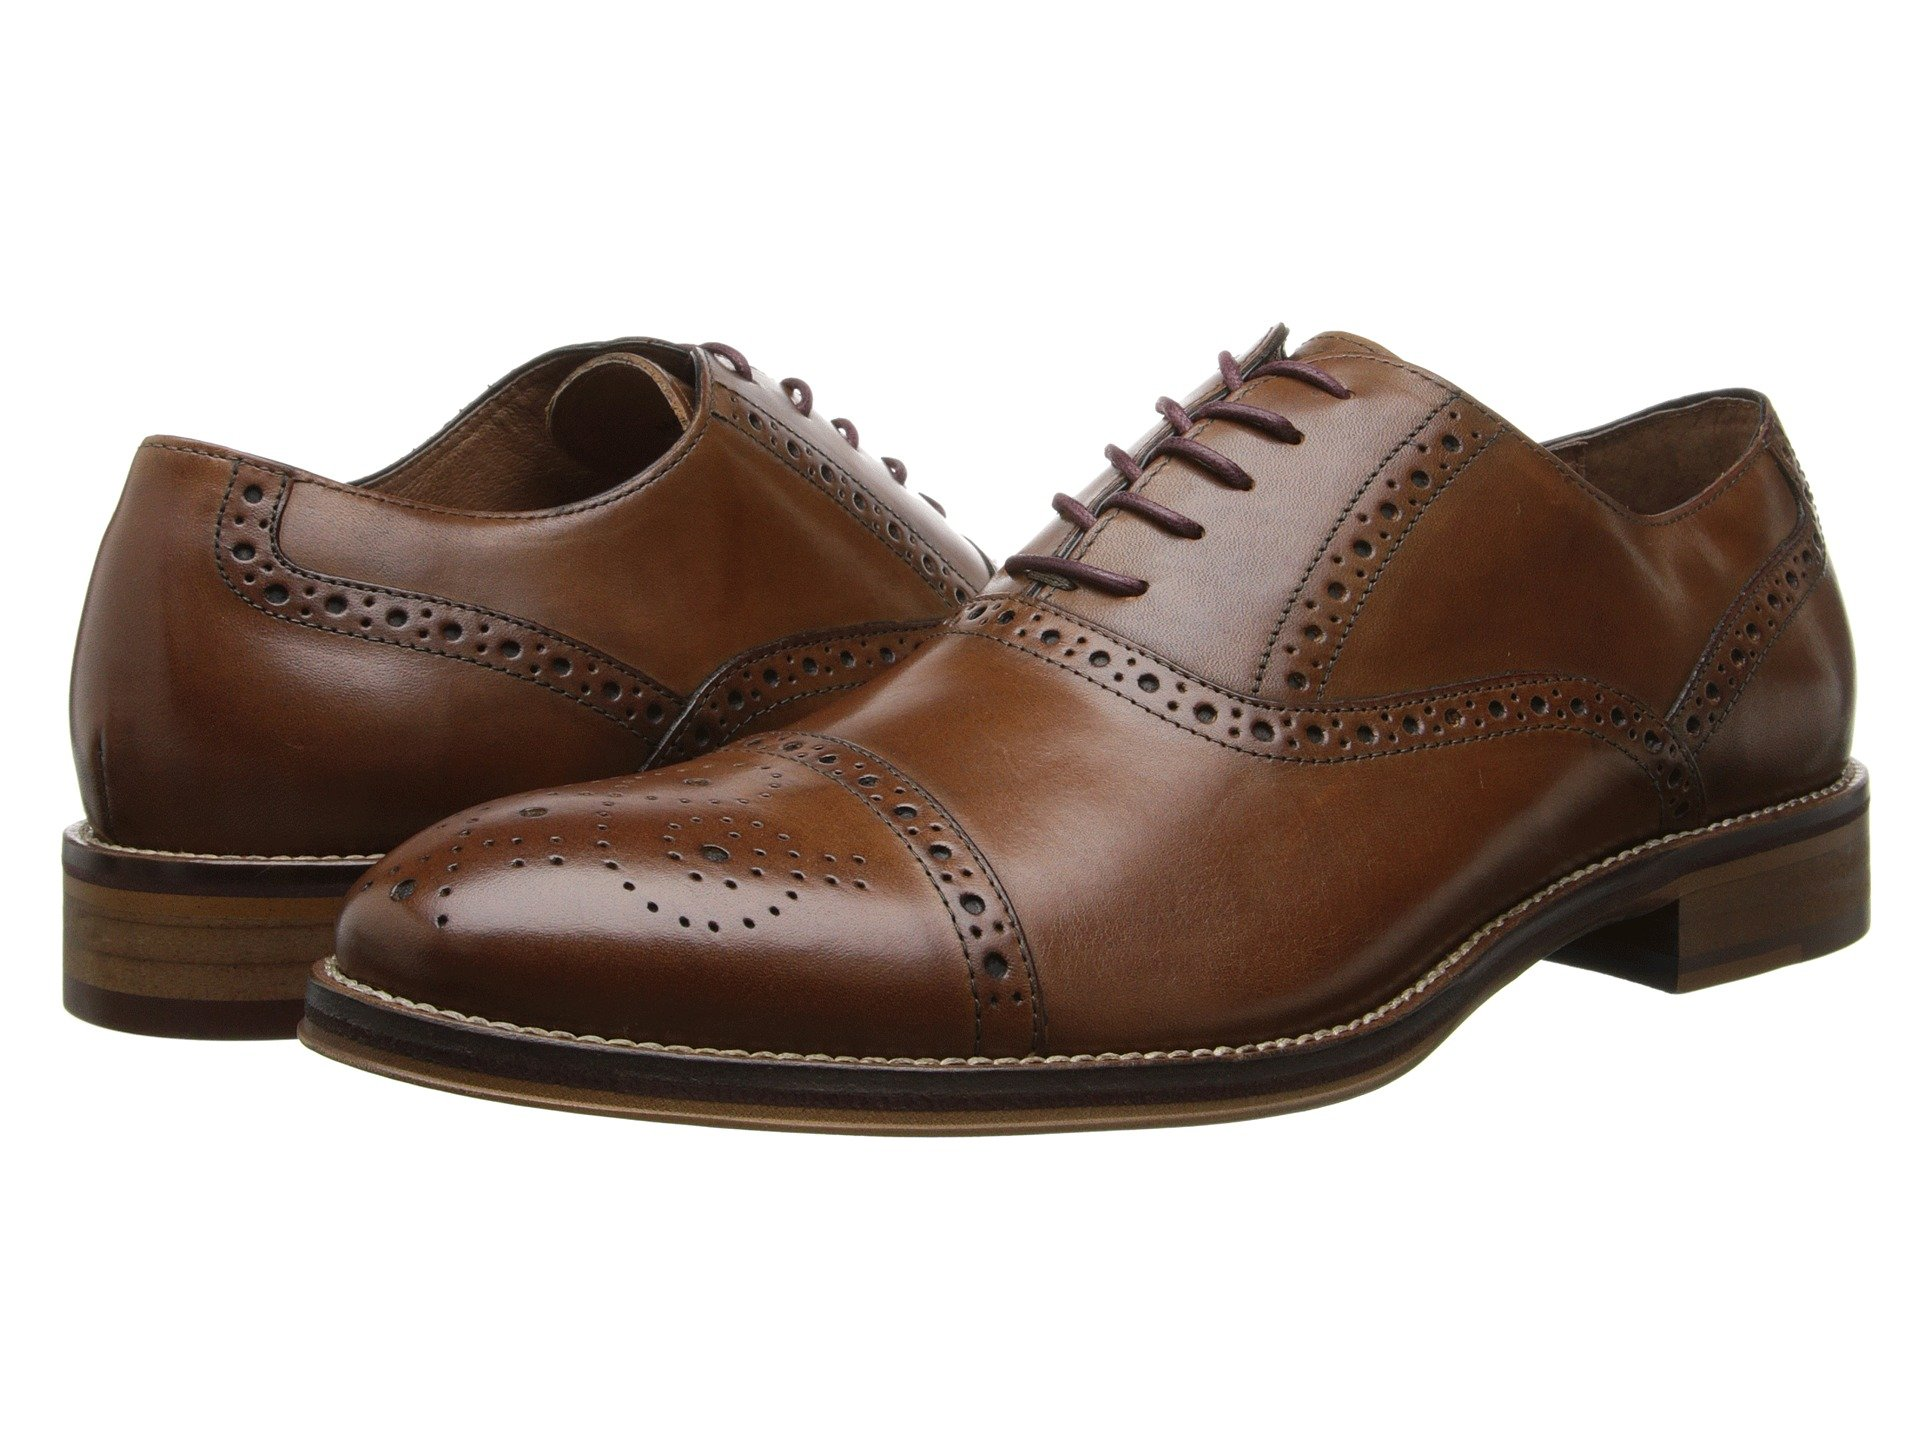 Johnston Amp Murphy Conard Cap Toe At Zappos Com